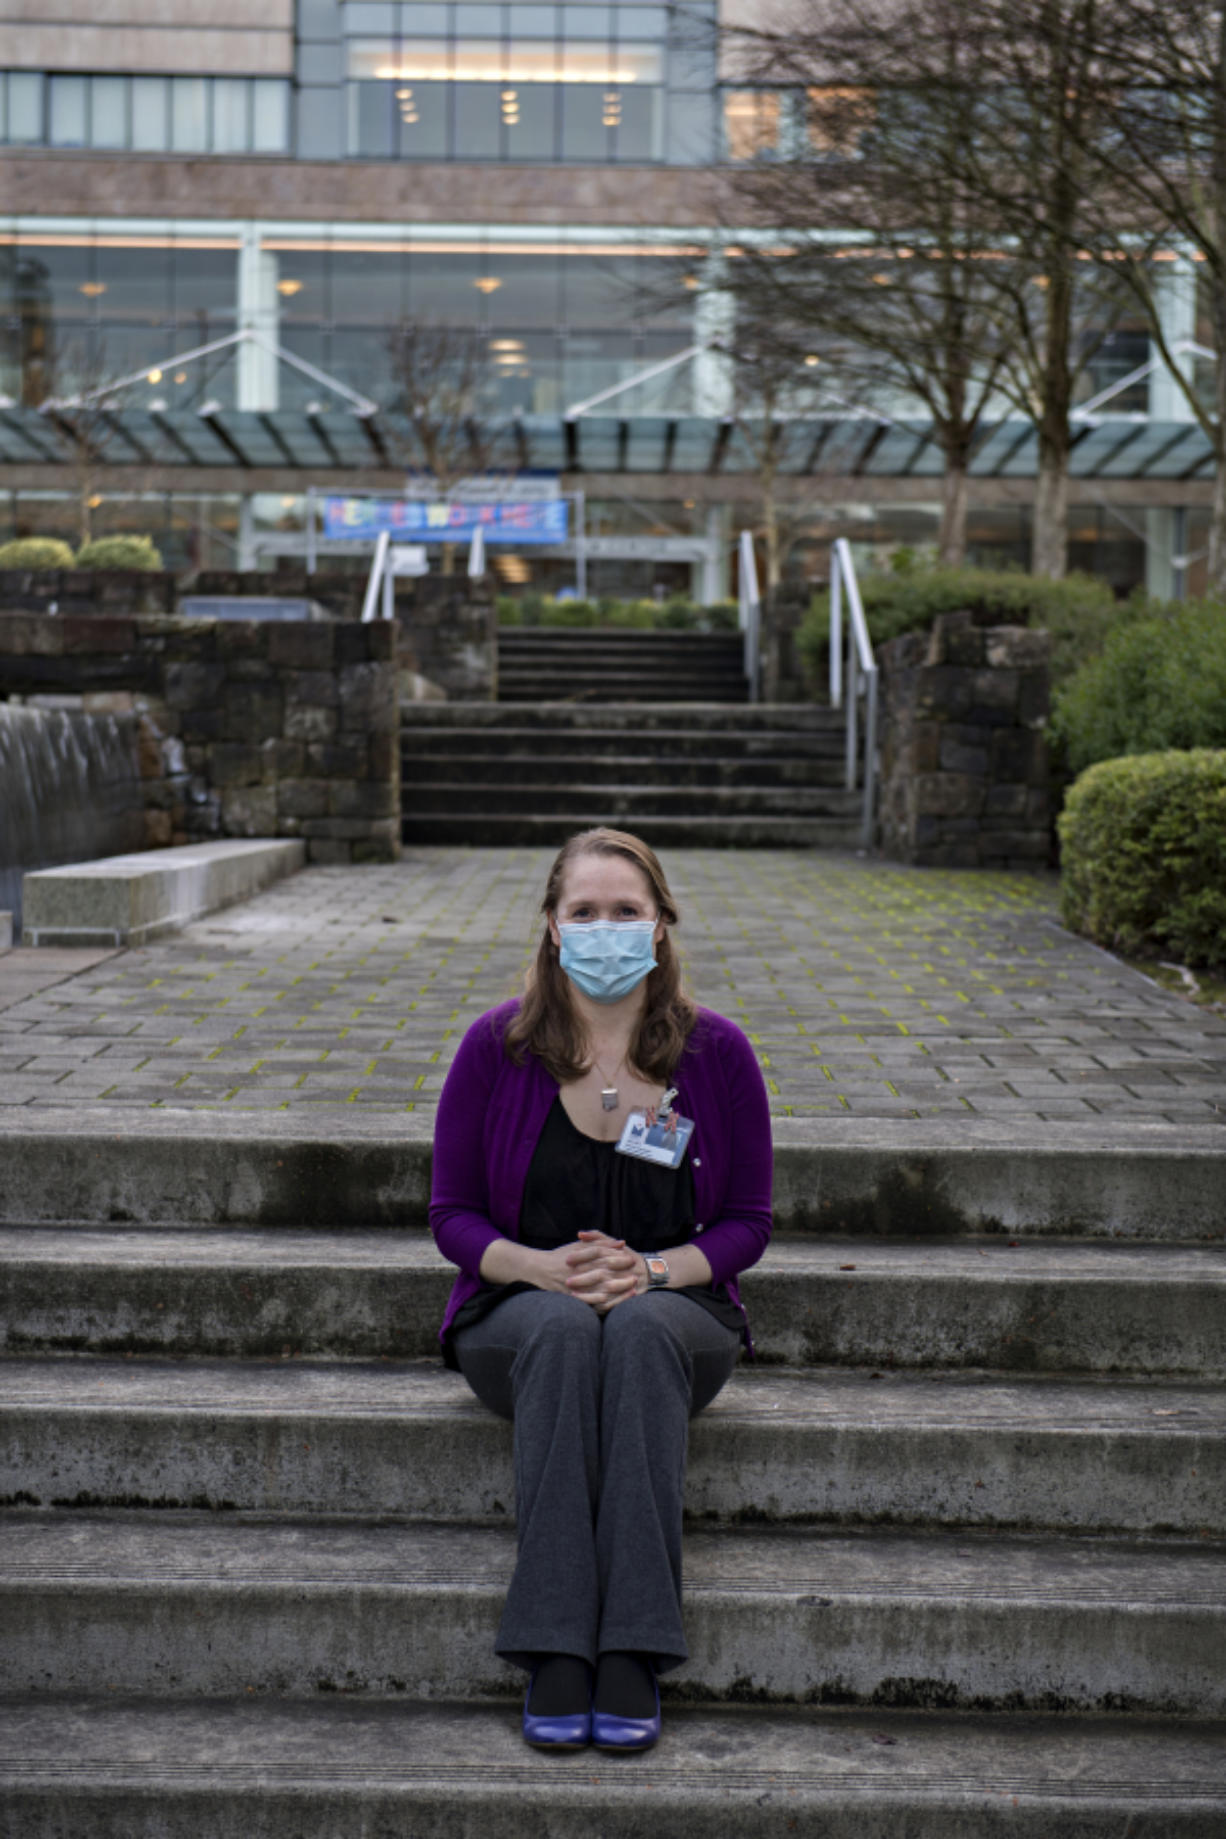 Jaellah Thalberg, a genetic counselor with the Legacy Health system, is one of two genetic counselors for the system in Clark County. She splits her time between Legacy Salmon Creek Medical Center and Legacy Emanuel Medical Center. During the pandemic, she works from her basement office in Hazel Dell.